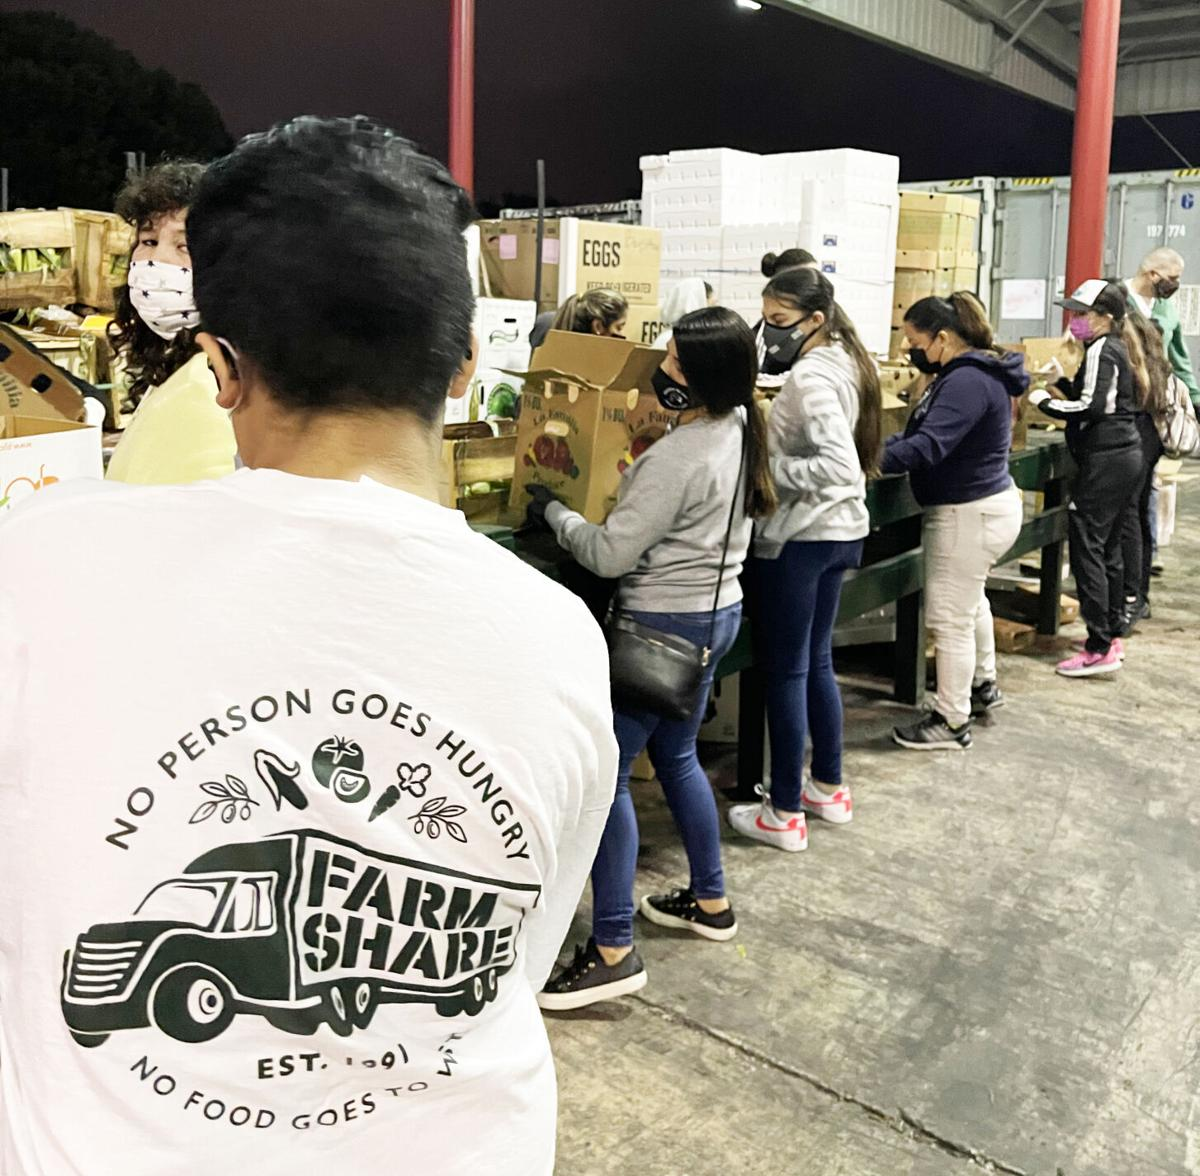 Farm Share volunteers loading up boxes for a future food drive.